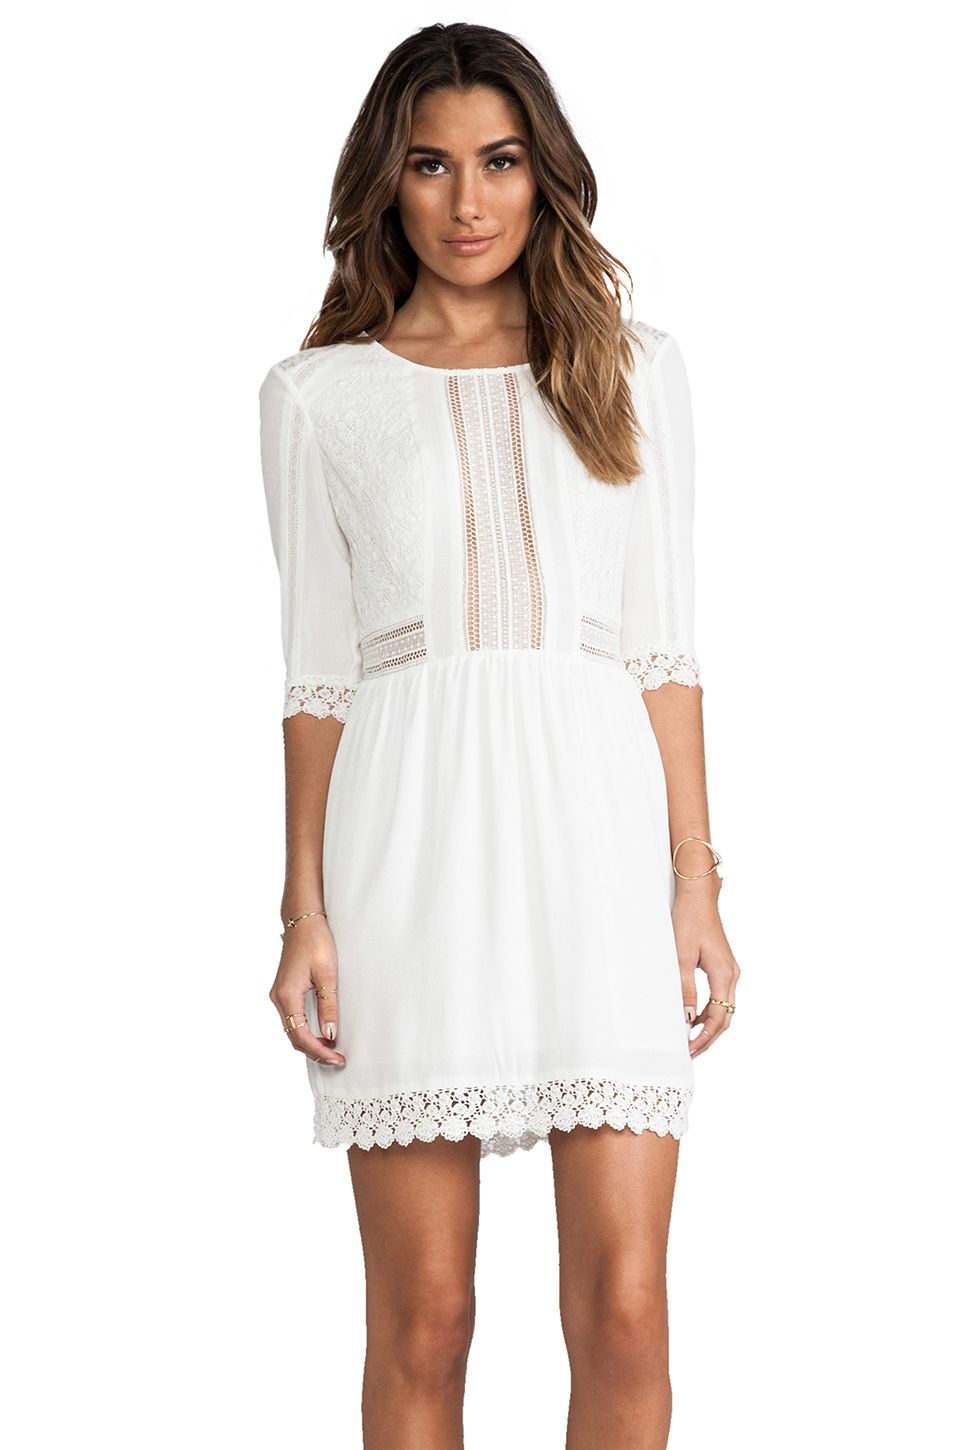 Heartloom Aimee Dress In White From Revolveclothing Com Fashion Party Dresses Online Aimee Dress